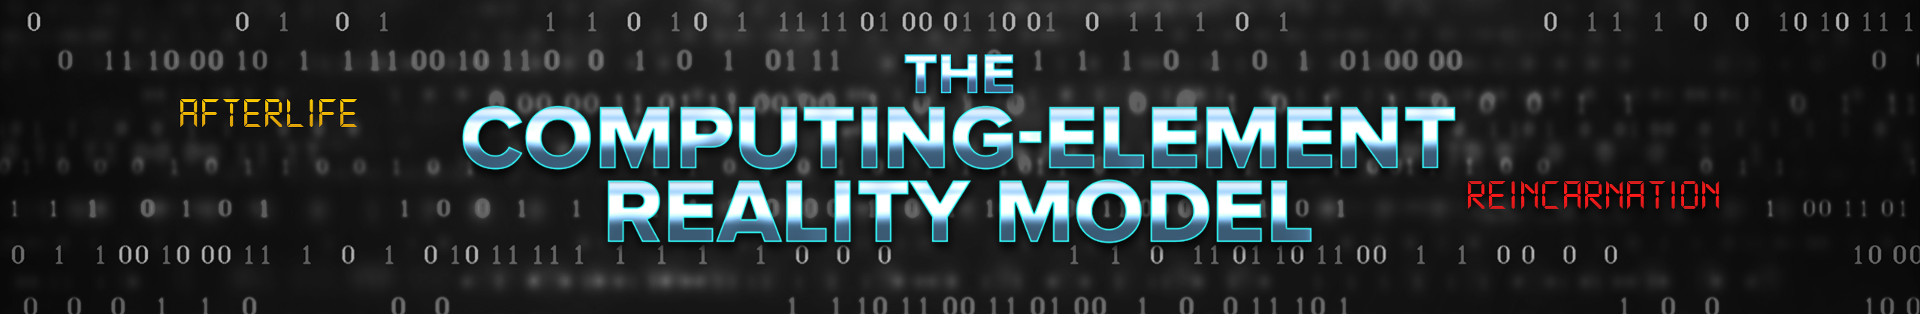 website image: The Computing-Element Reality Model, afterlife and reincarnation